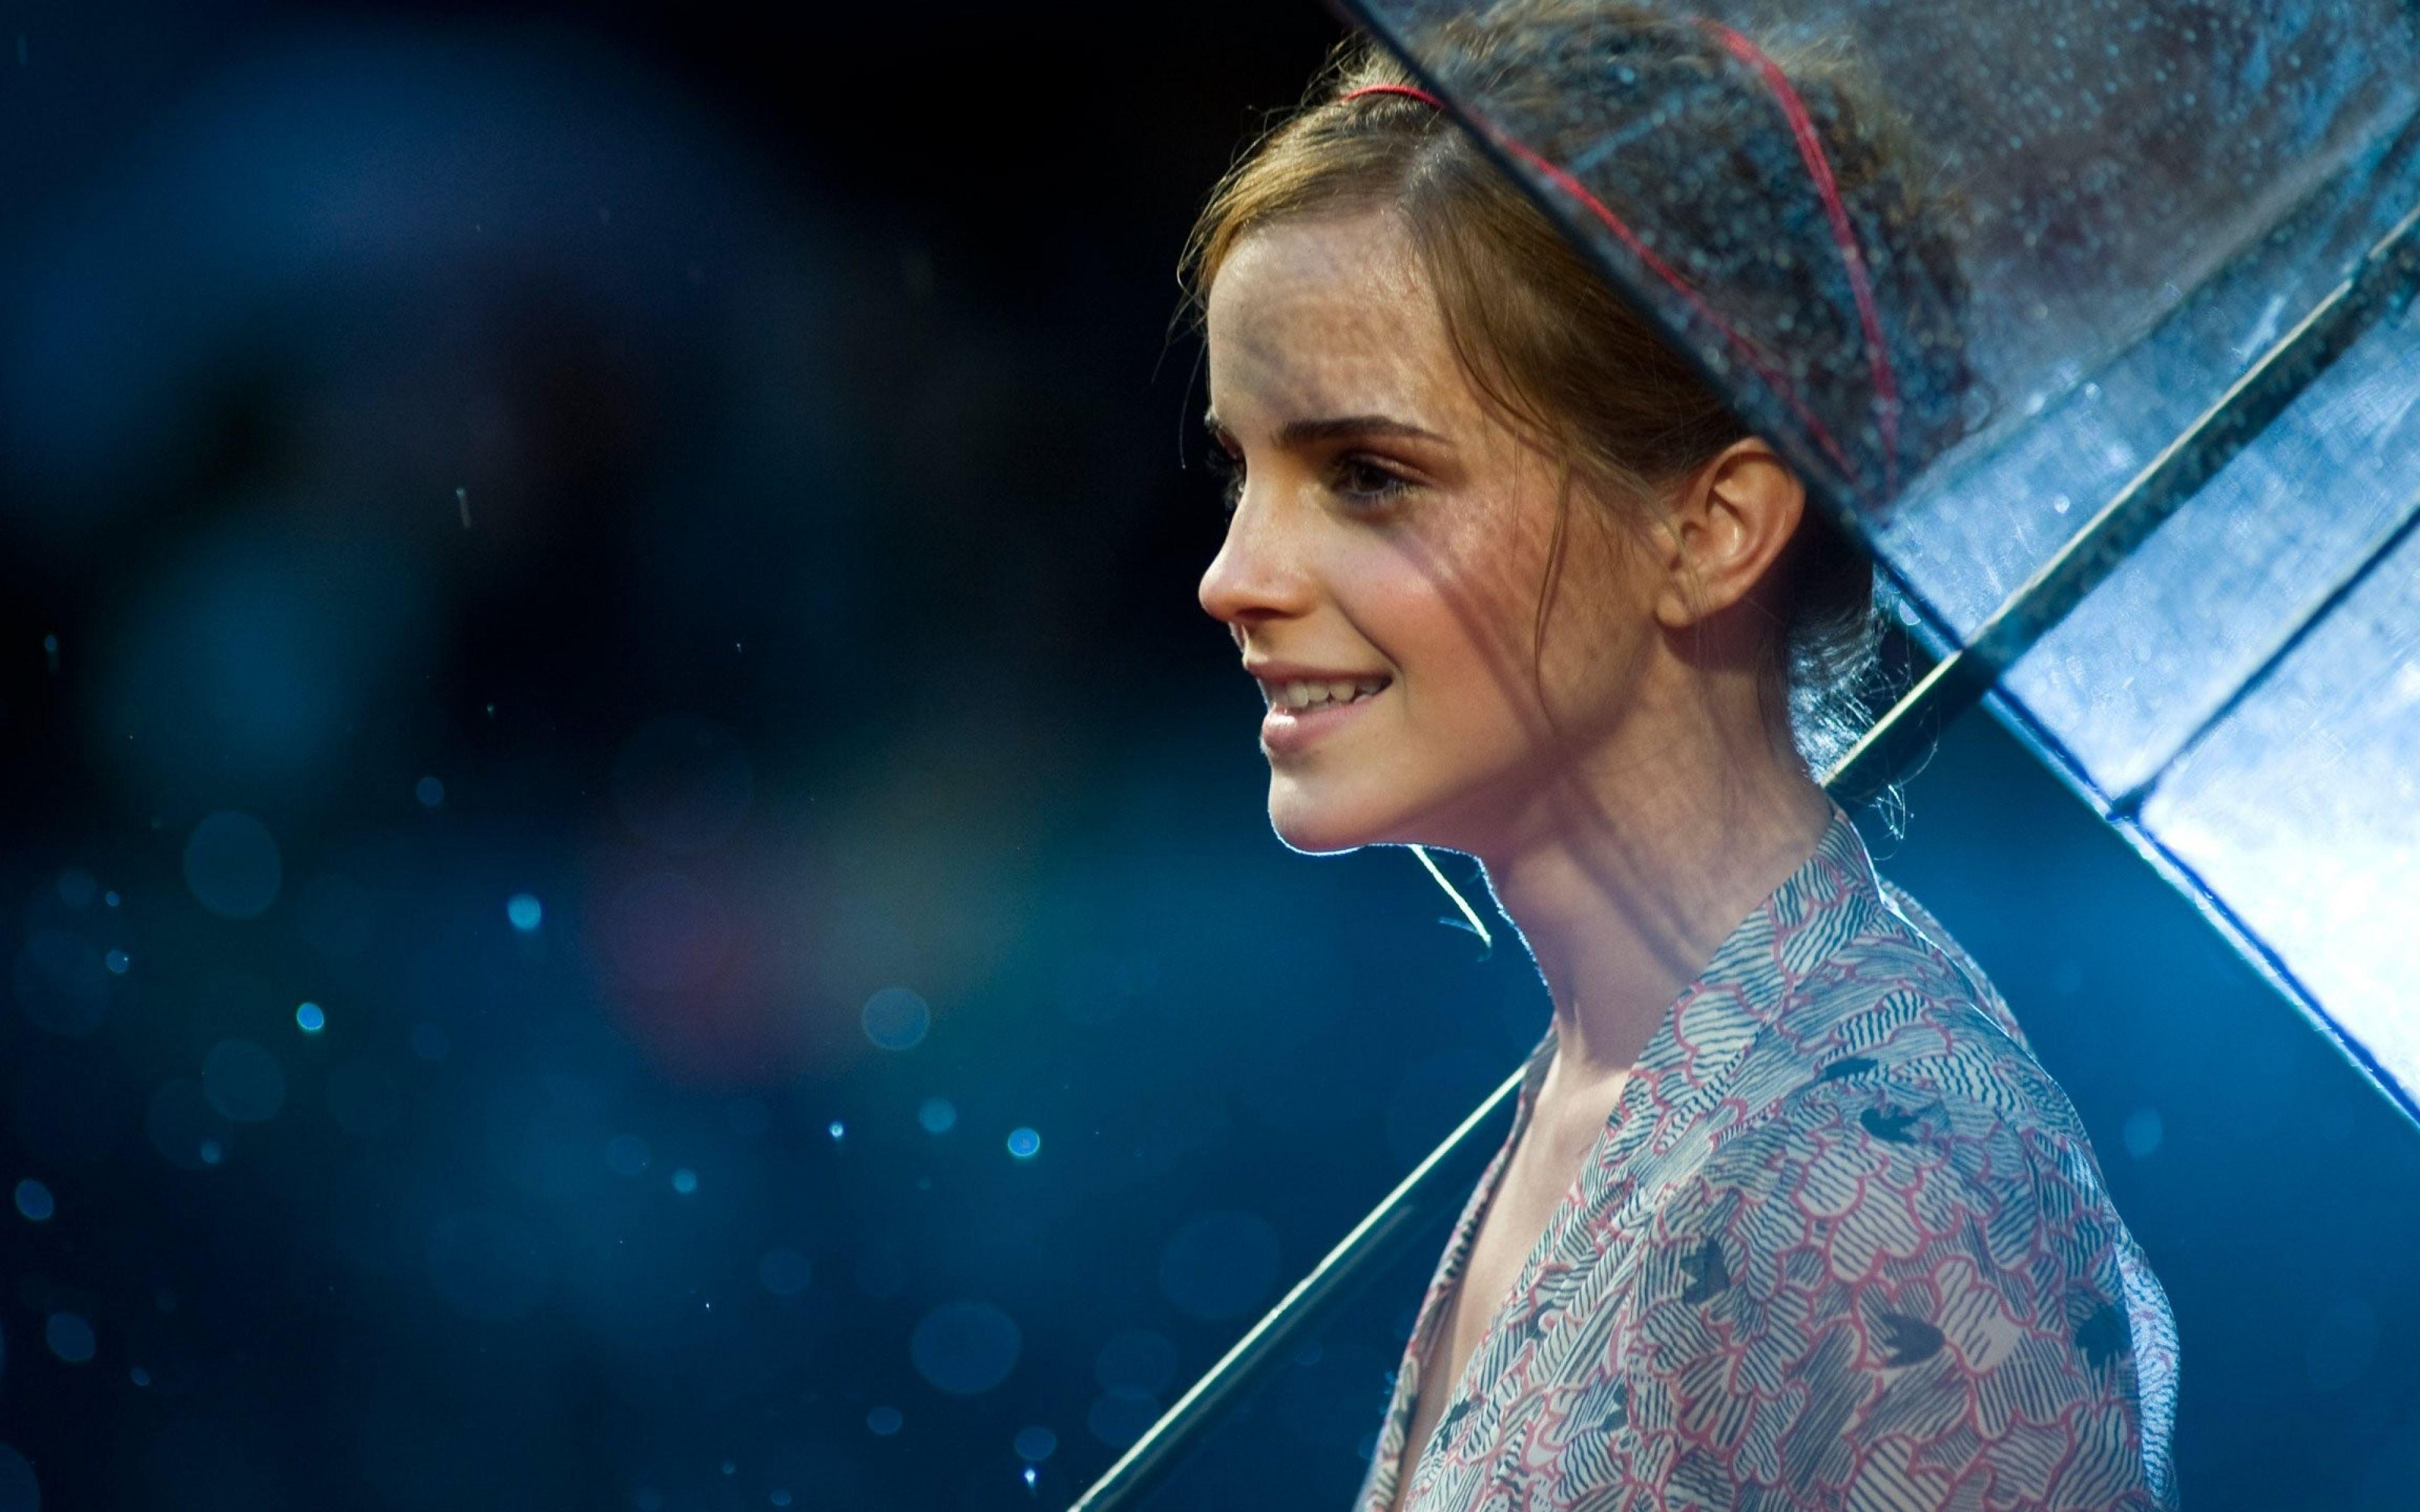 Ultra HD 4K Emma watson Wallpapers HD, Desktop Backgrounds ...